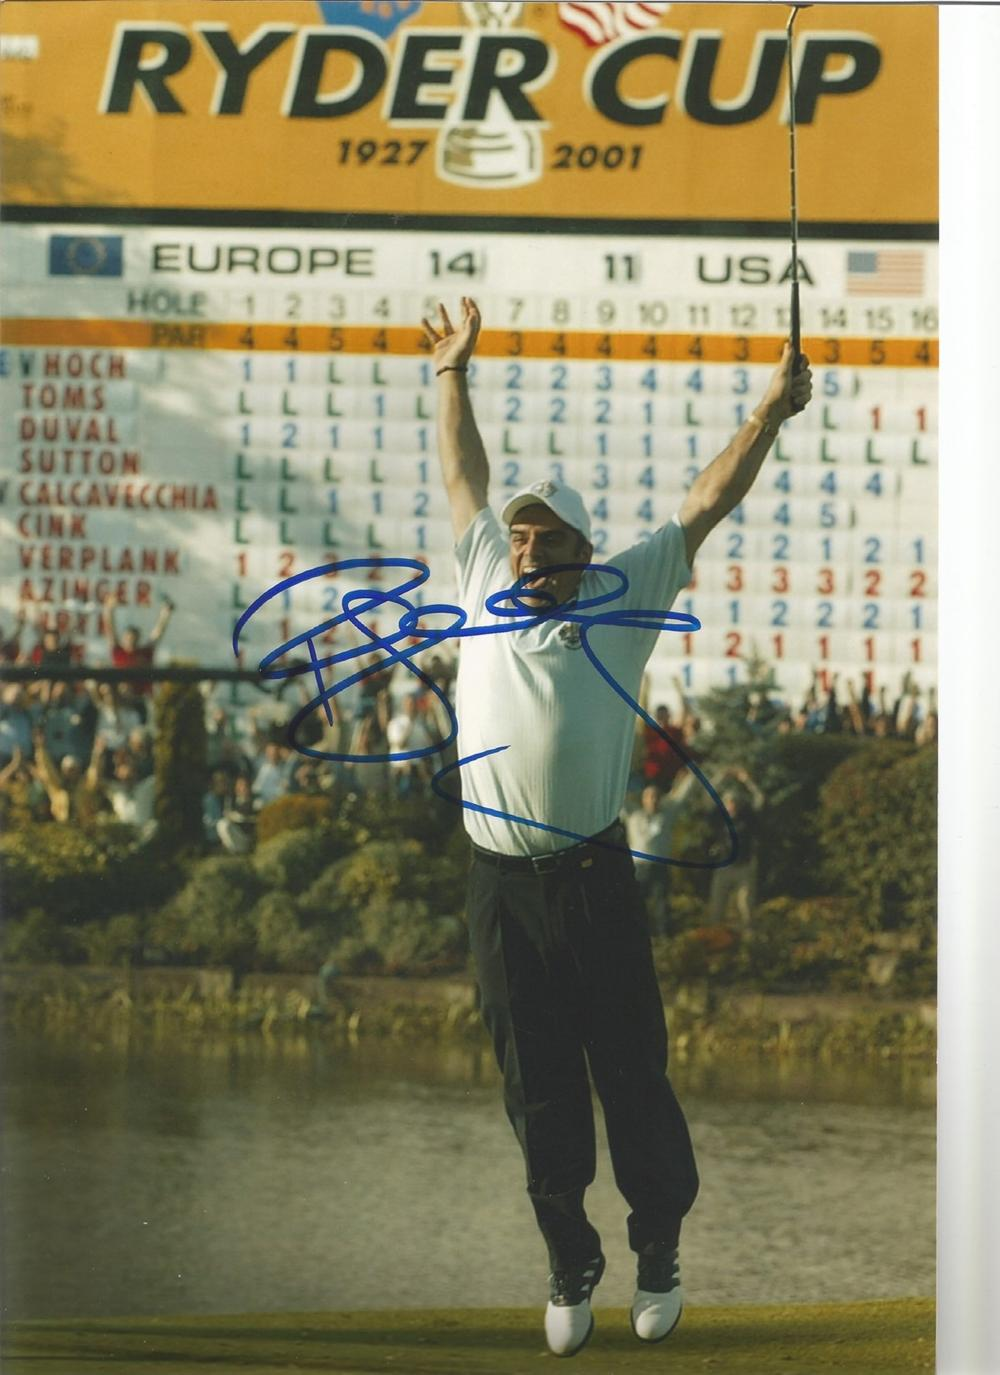 Paul McGinley Signed Ryder Cup Golf 8x12 Photo. Good condition. All autographs come with a